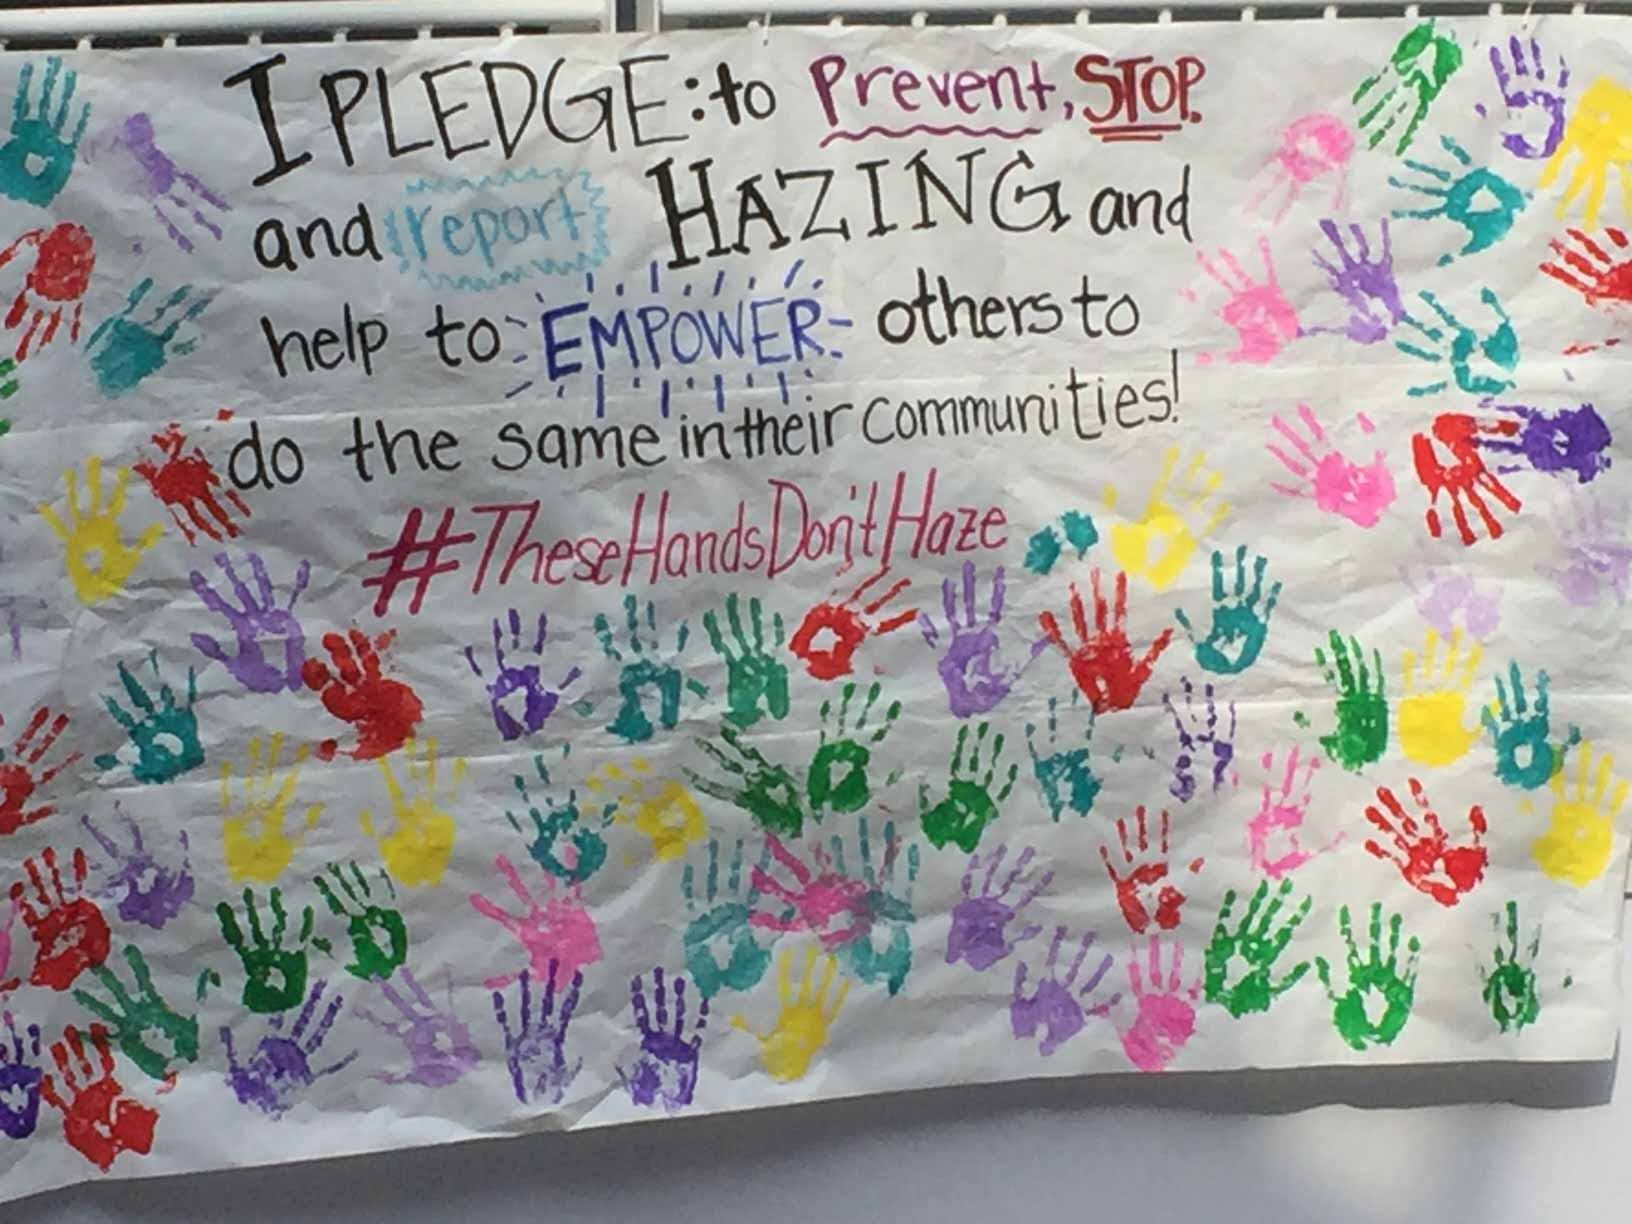 Poster with pledge to prevent, stop and report hazing